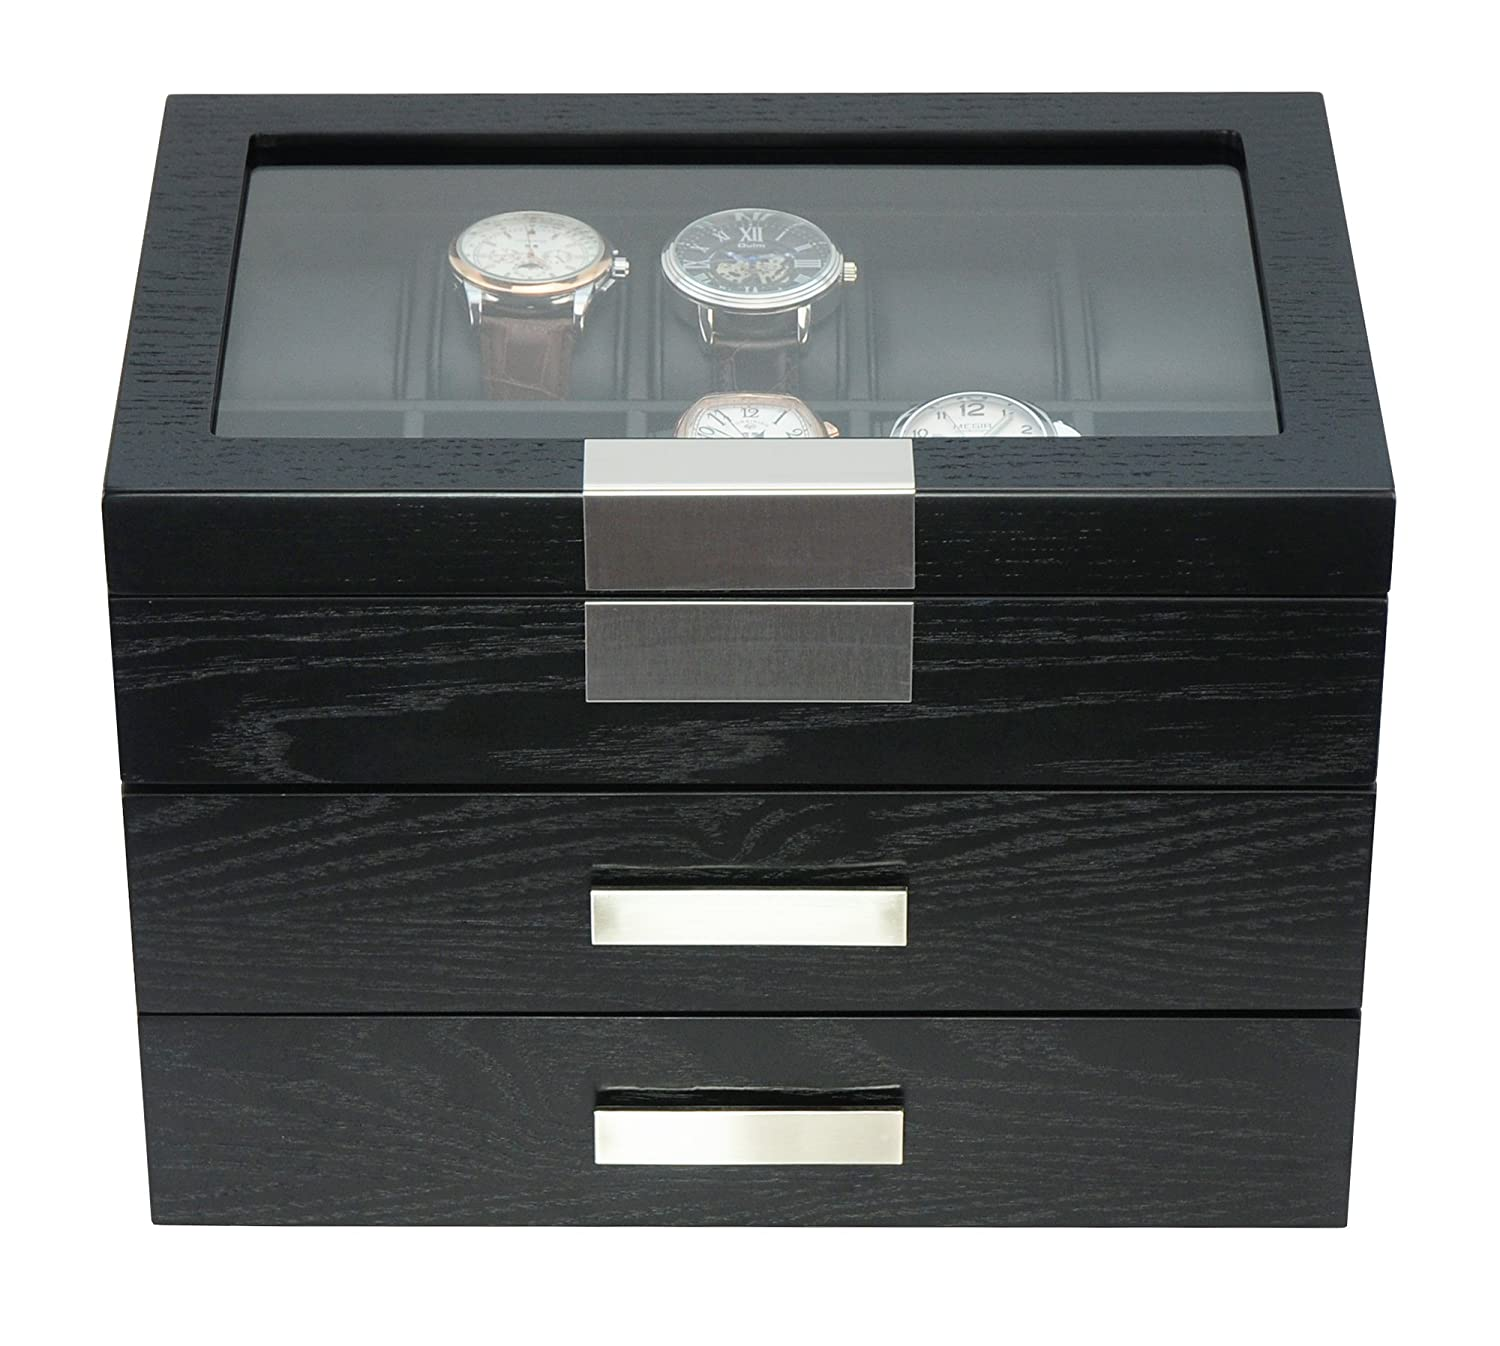 Timelybuys 30 Black Wood Personalized Watch Box Display Case 3 Level Storage Jewelry Organizer With Glass Top Stainless Steel Accents And 2 Drawers